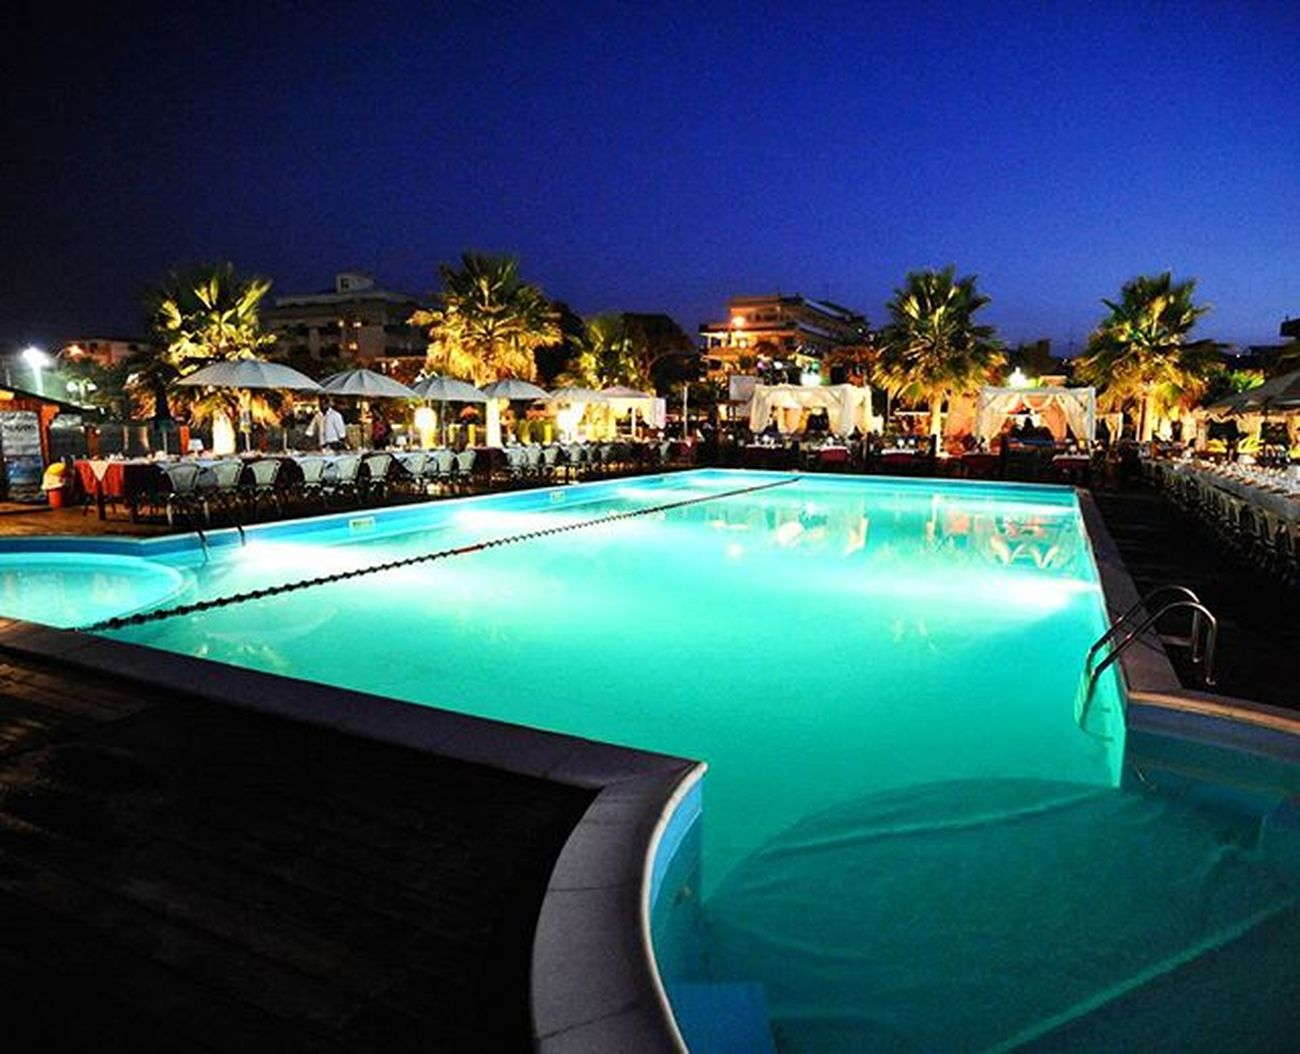 Nighttime Nightlife 33agosto Manakara Holiday Swimmingpool Deluxe Oldalbum Oldholidays Abruzzo Club Dance Young Wild And Spritz ©